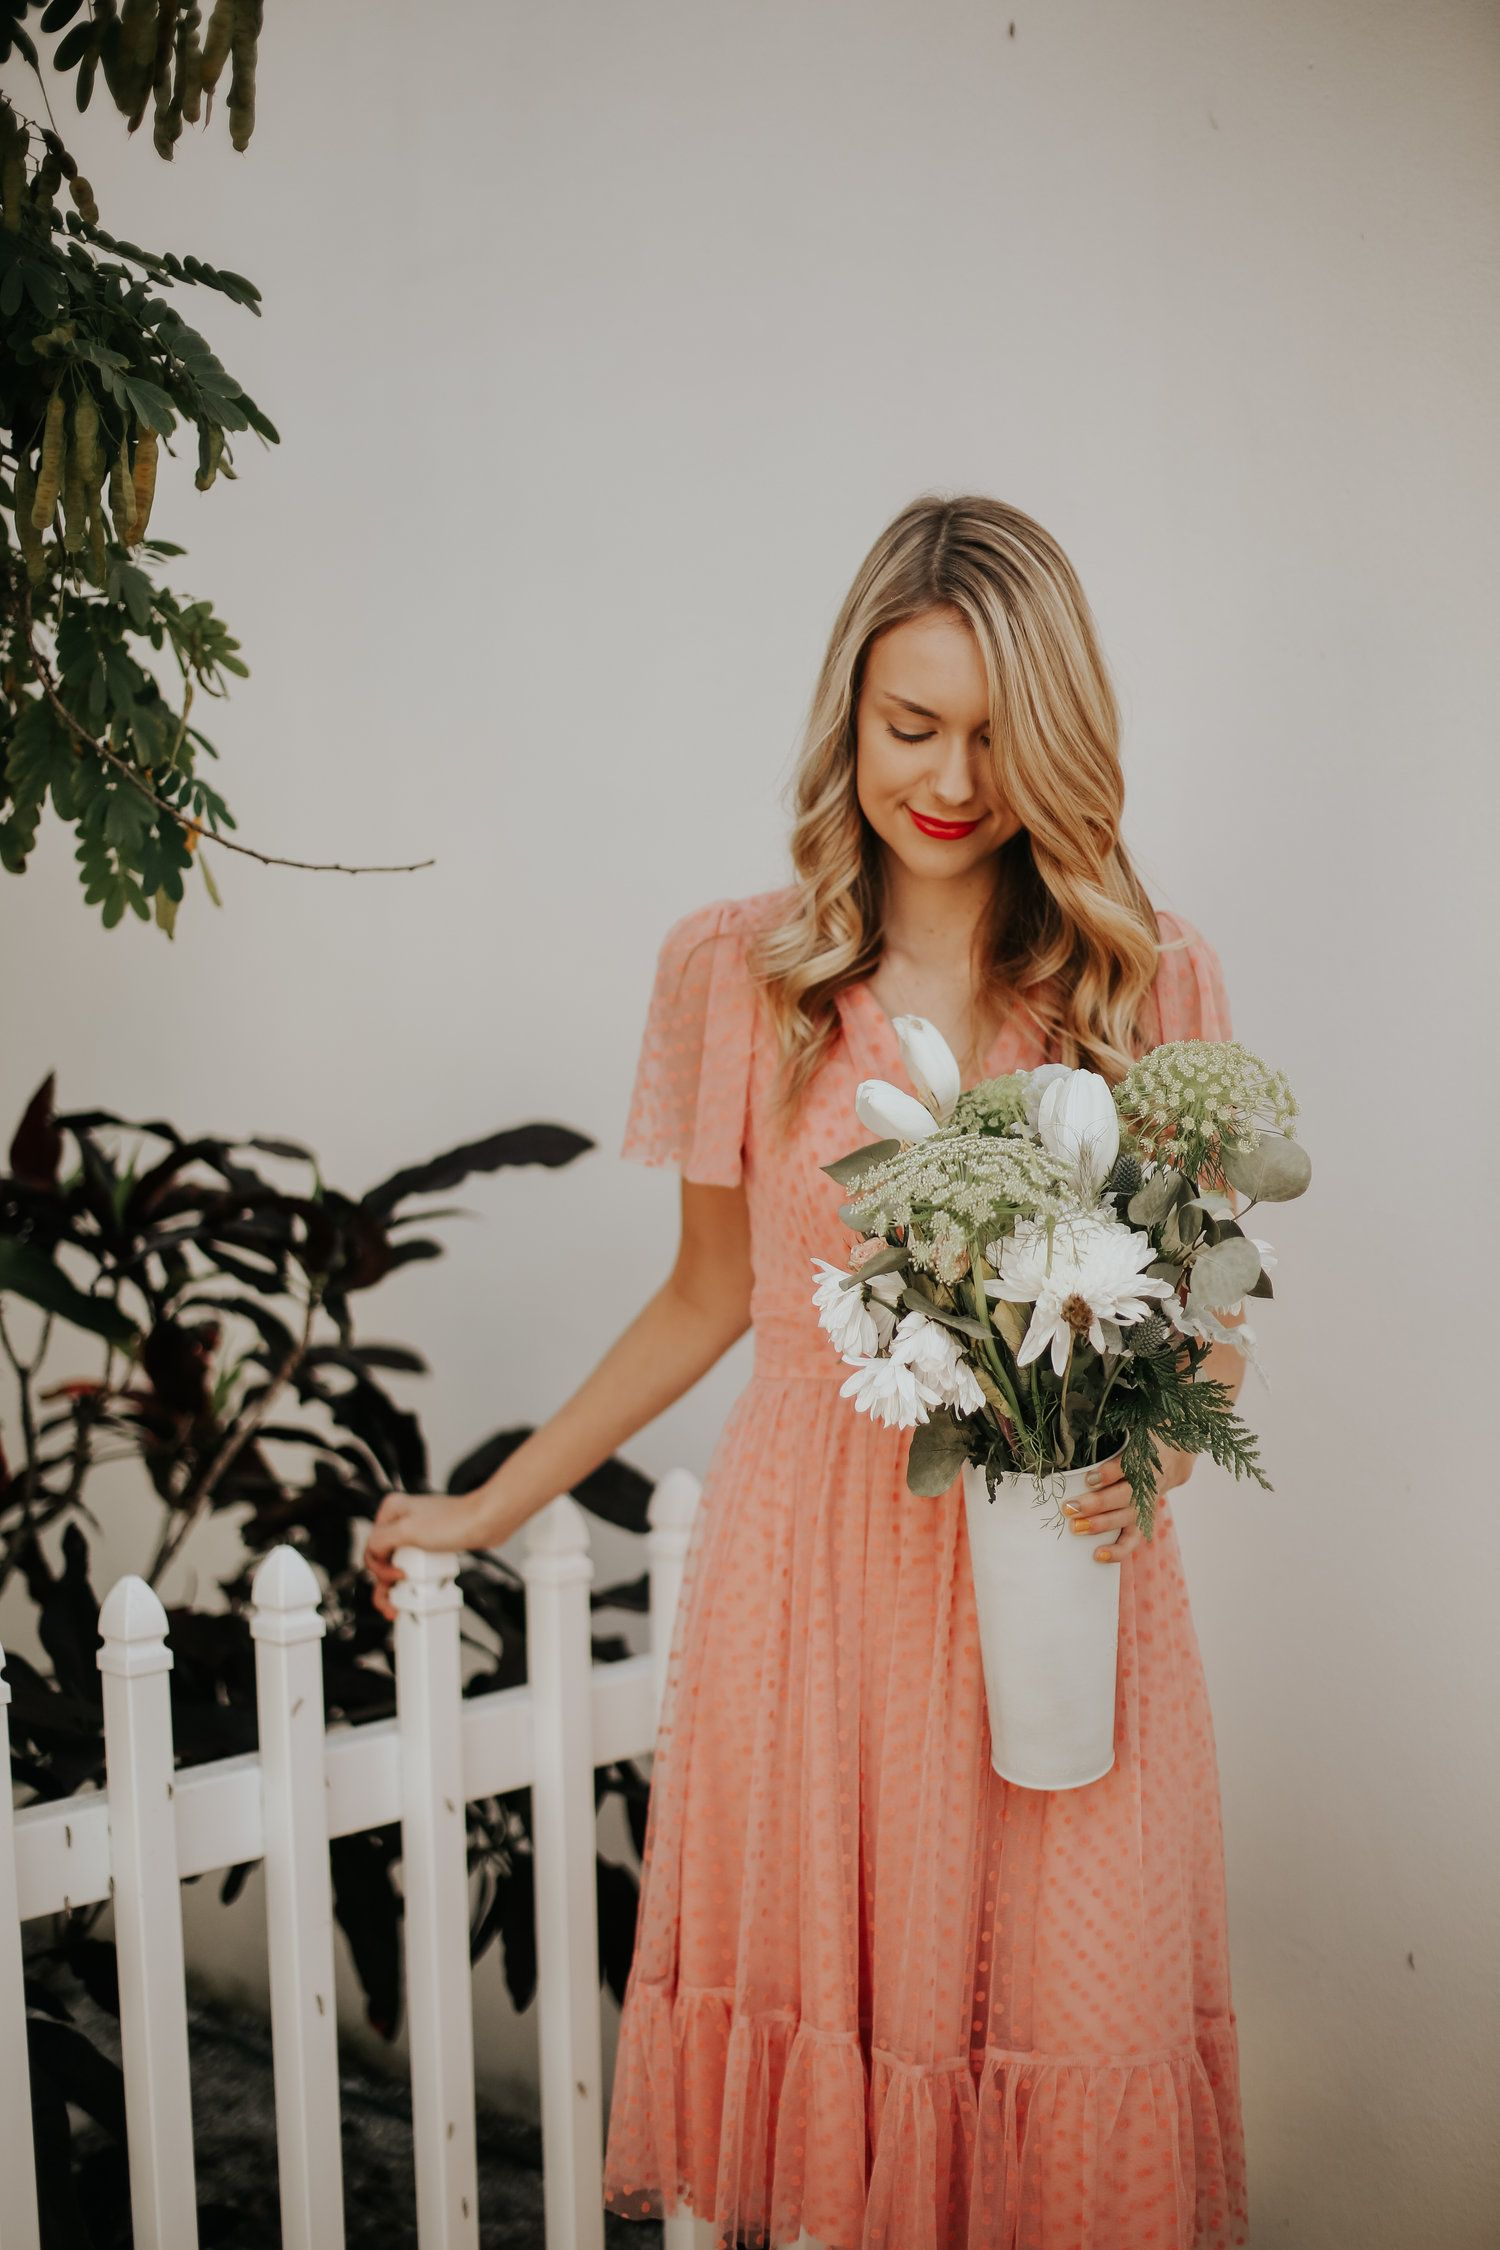 HOW TO MAKE A GIRLS DAY | Beautiful bouquet of flowers